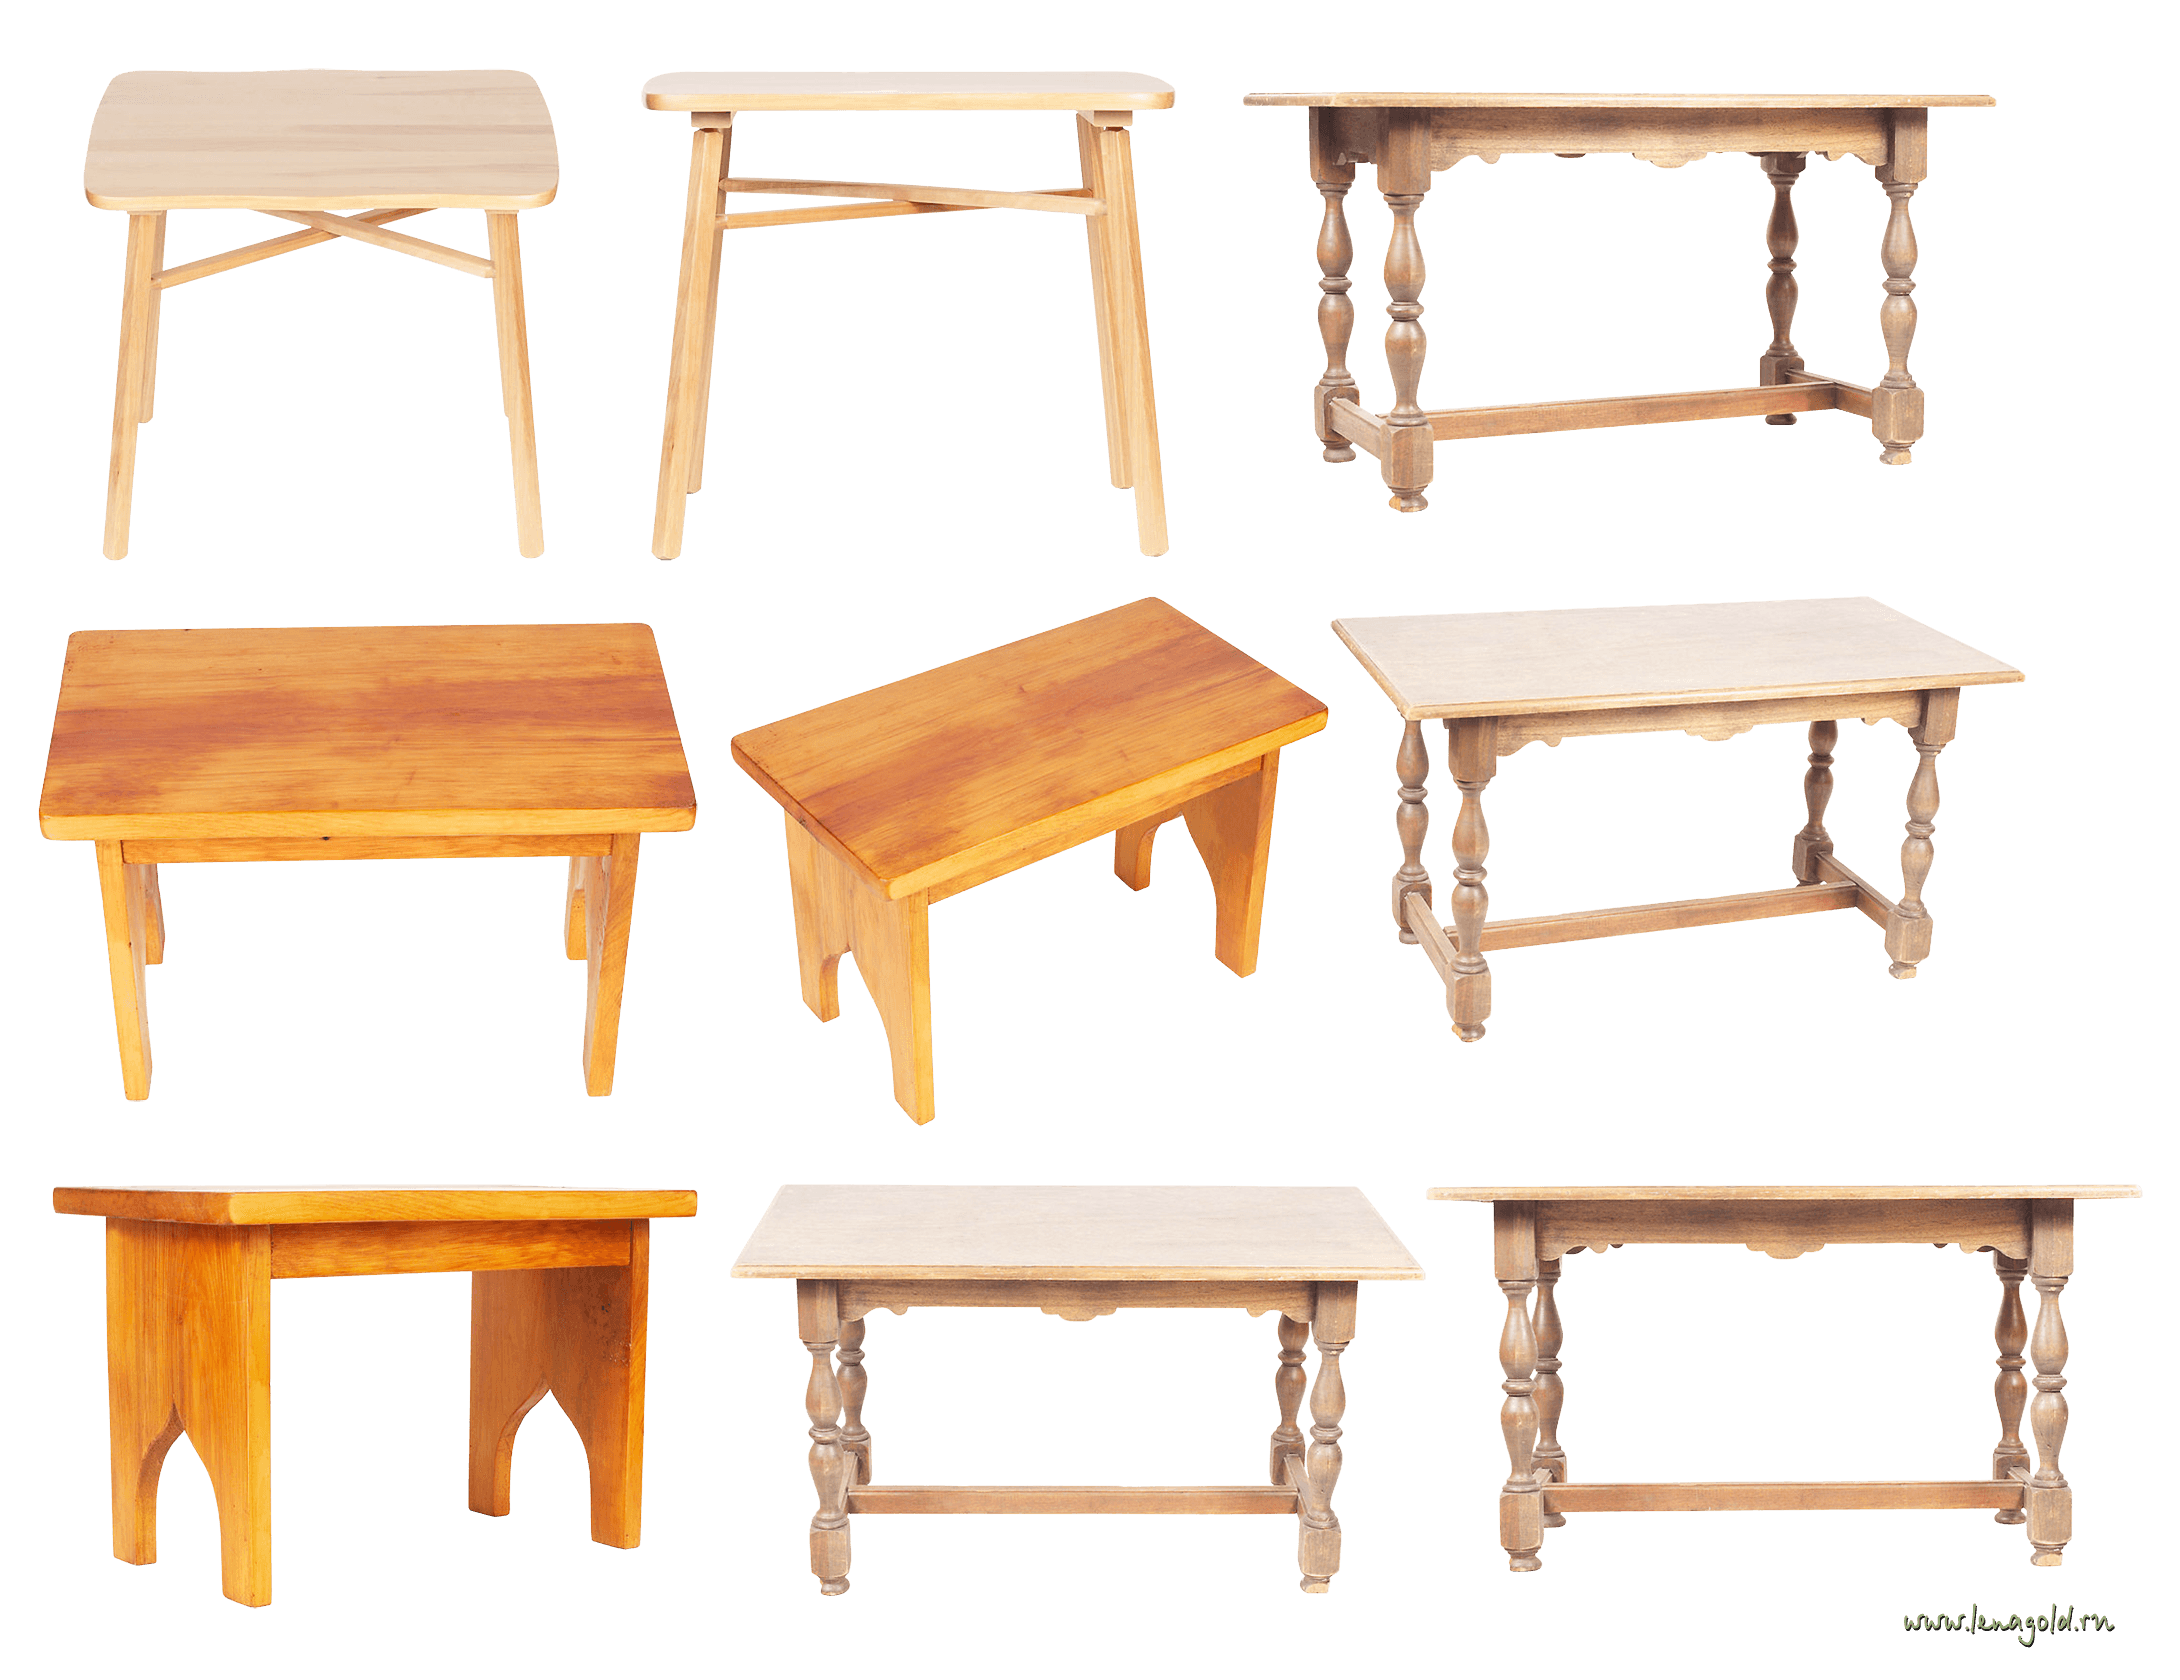 Wooden Tables Png Image PNG Image